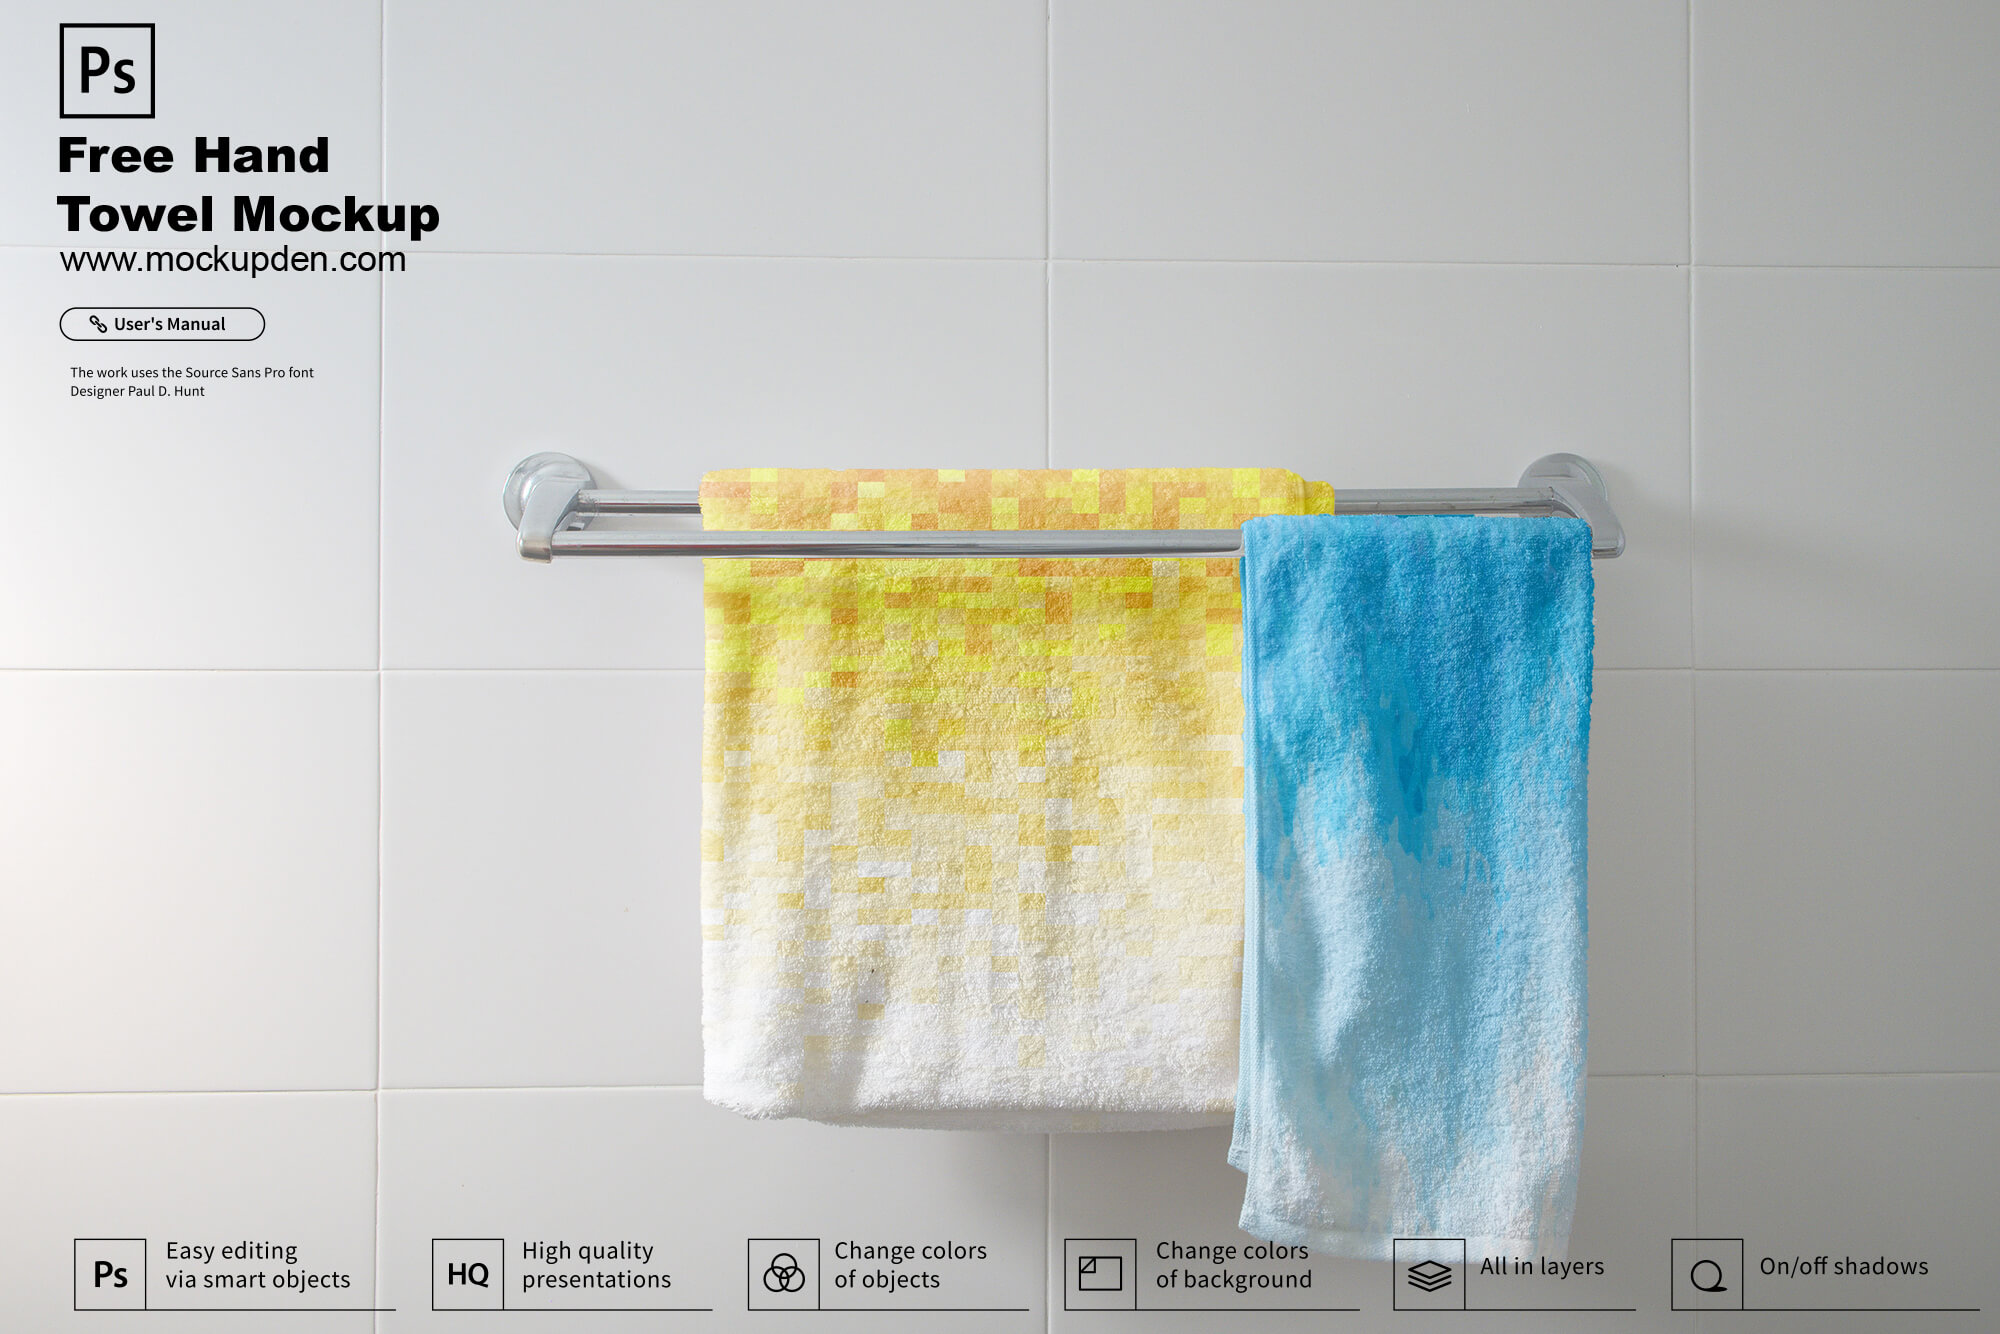 Free Hanging Hand Towel Mockup PSD Template